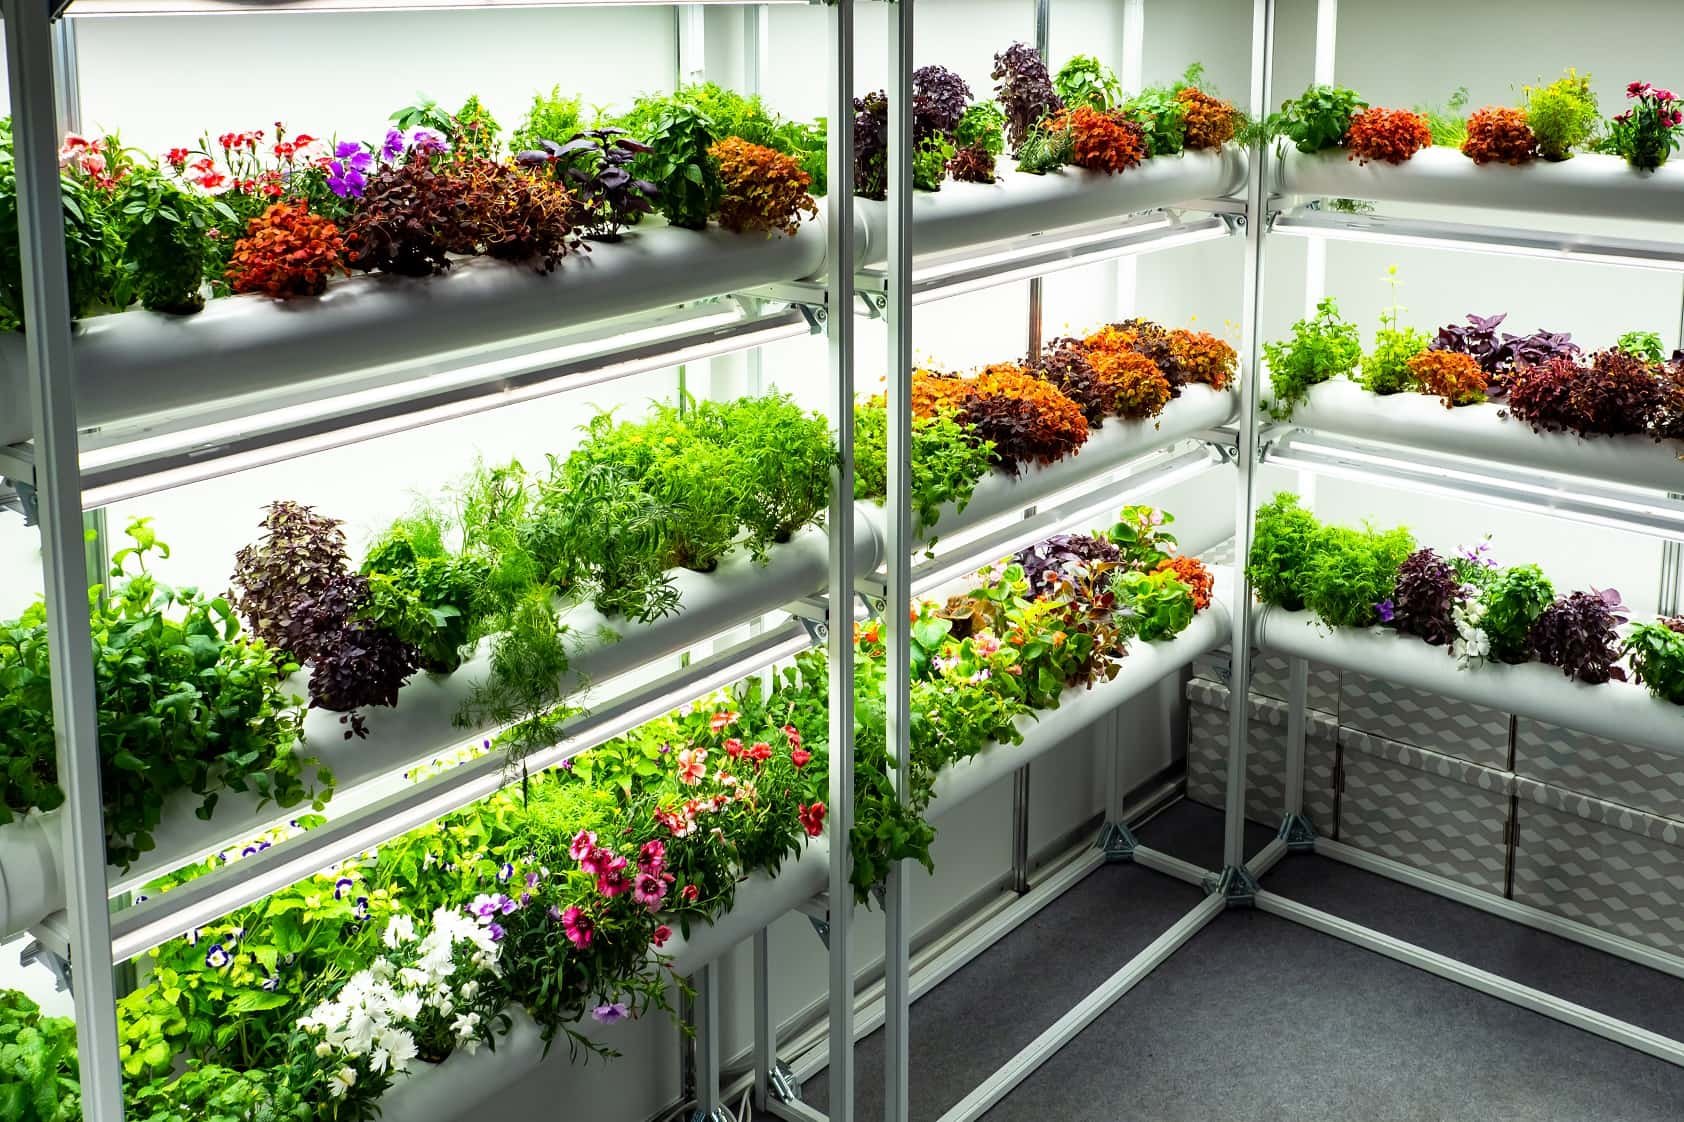 6 Benefits Of Having A Small Greenhouse In Your Home. The flowers and plants at the rack